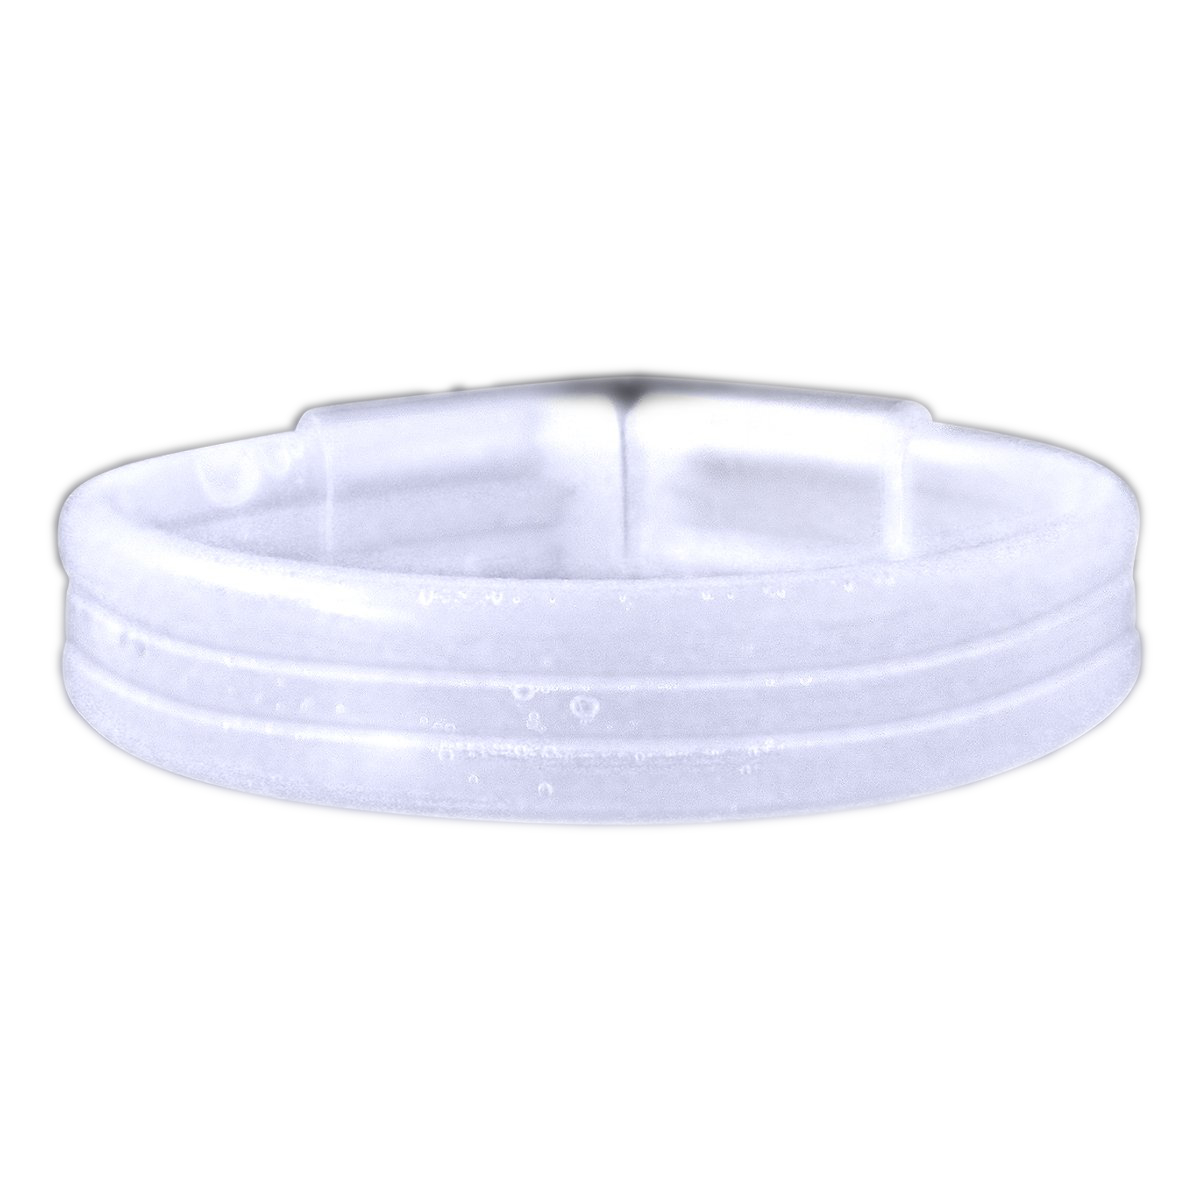 Wide Glow Stick 8 Inch Bracelet White Pack of 30 All Products